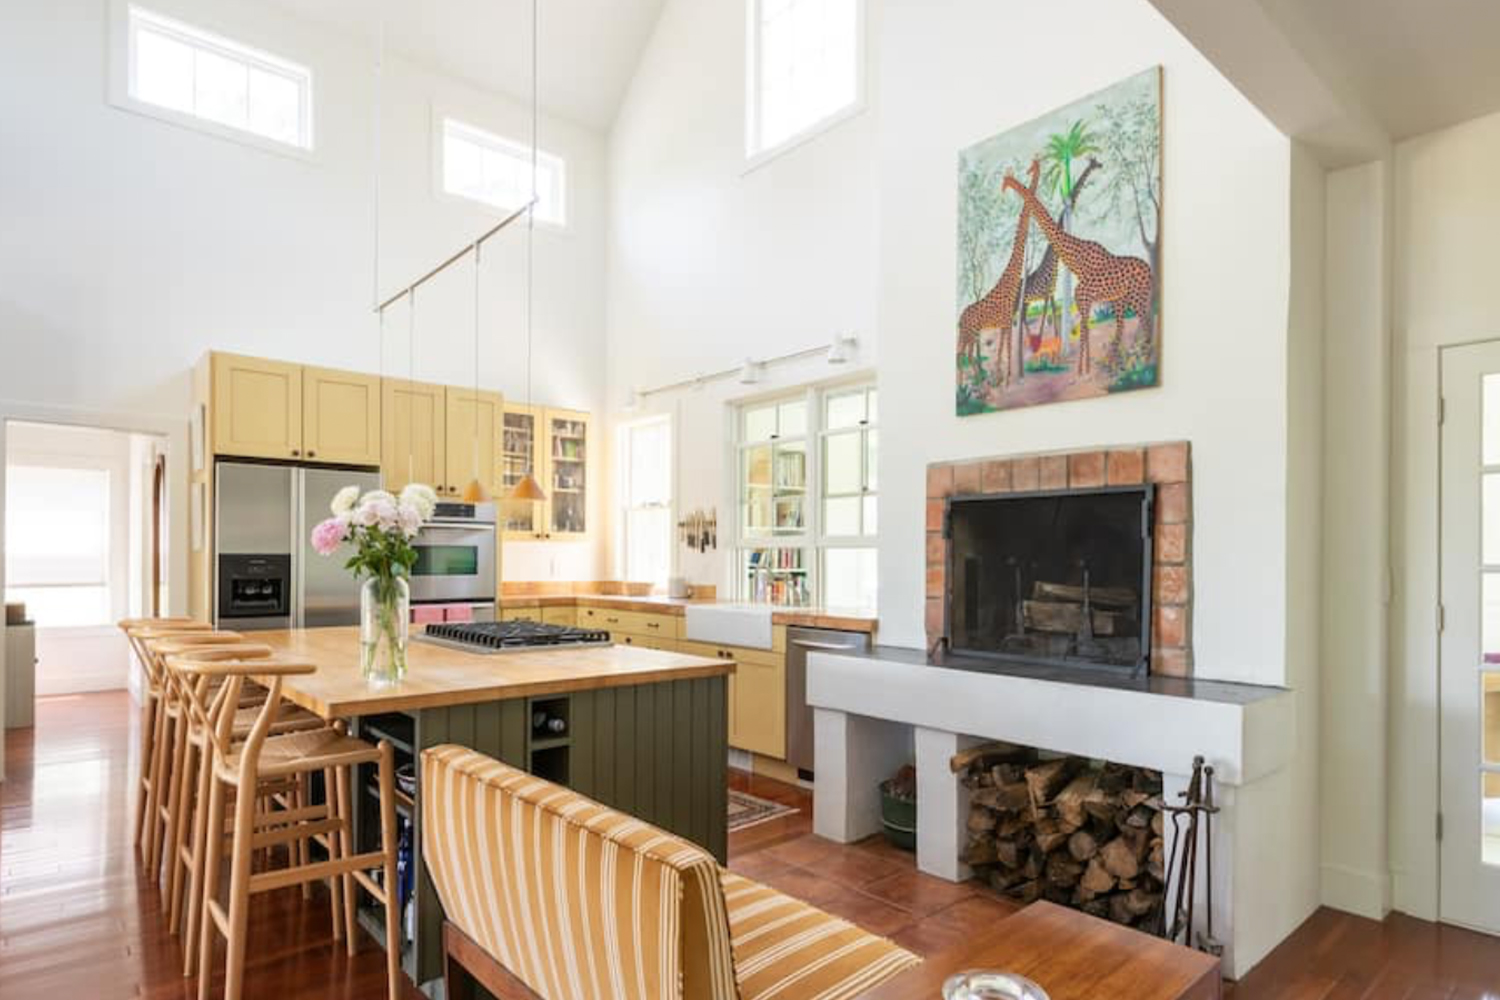 Sunfilled modern farmhouse on a 27 acre safe-haven